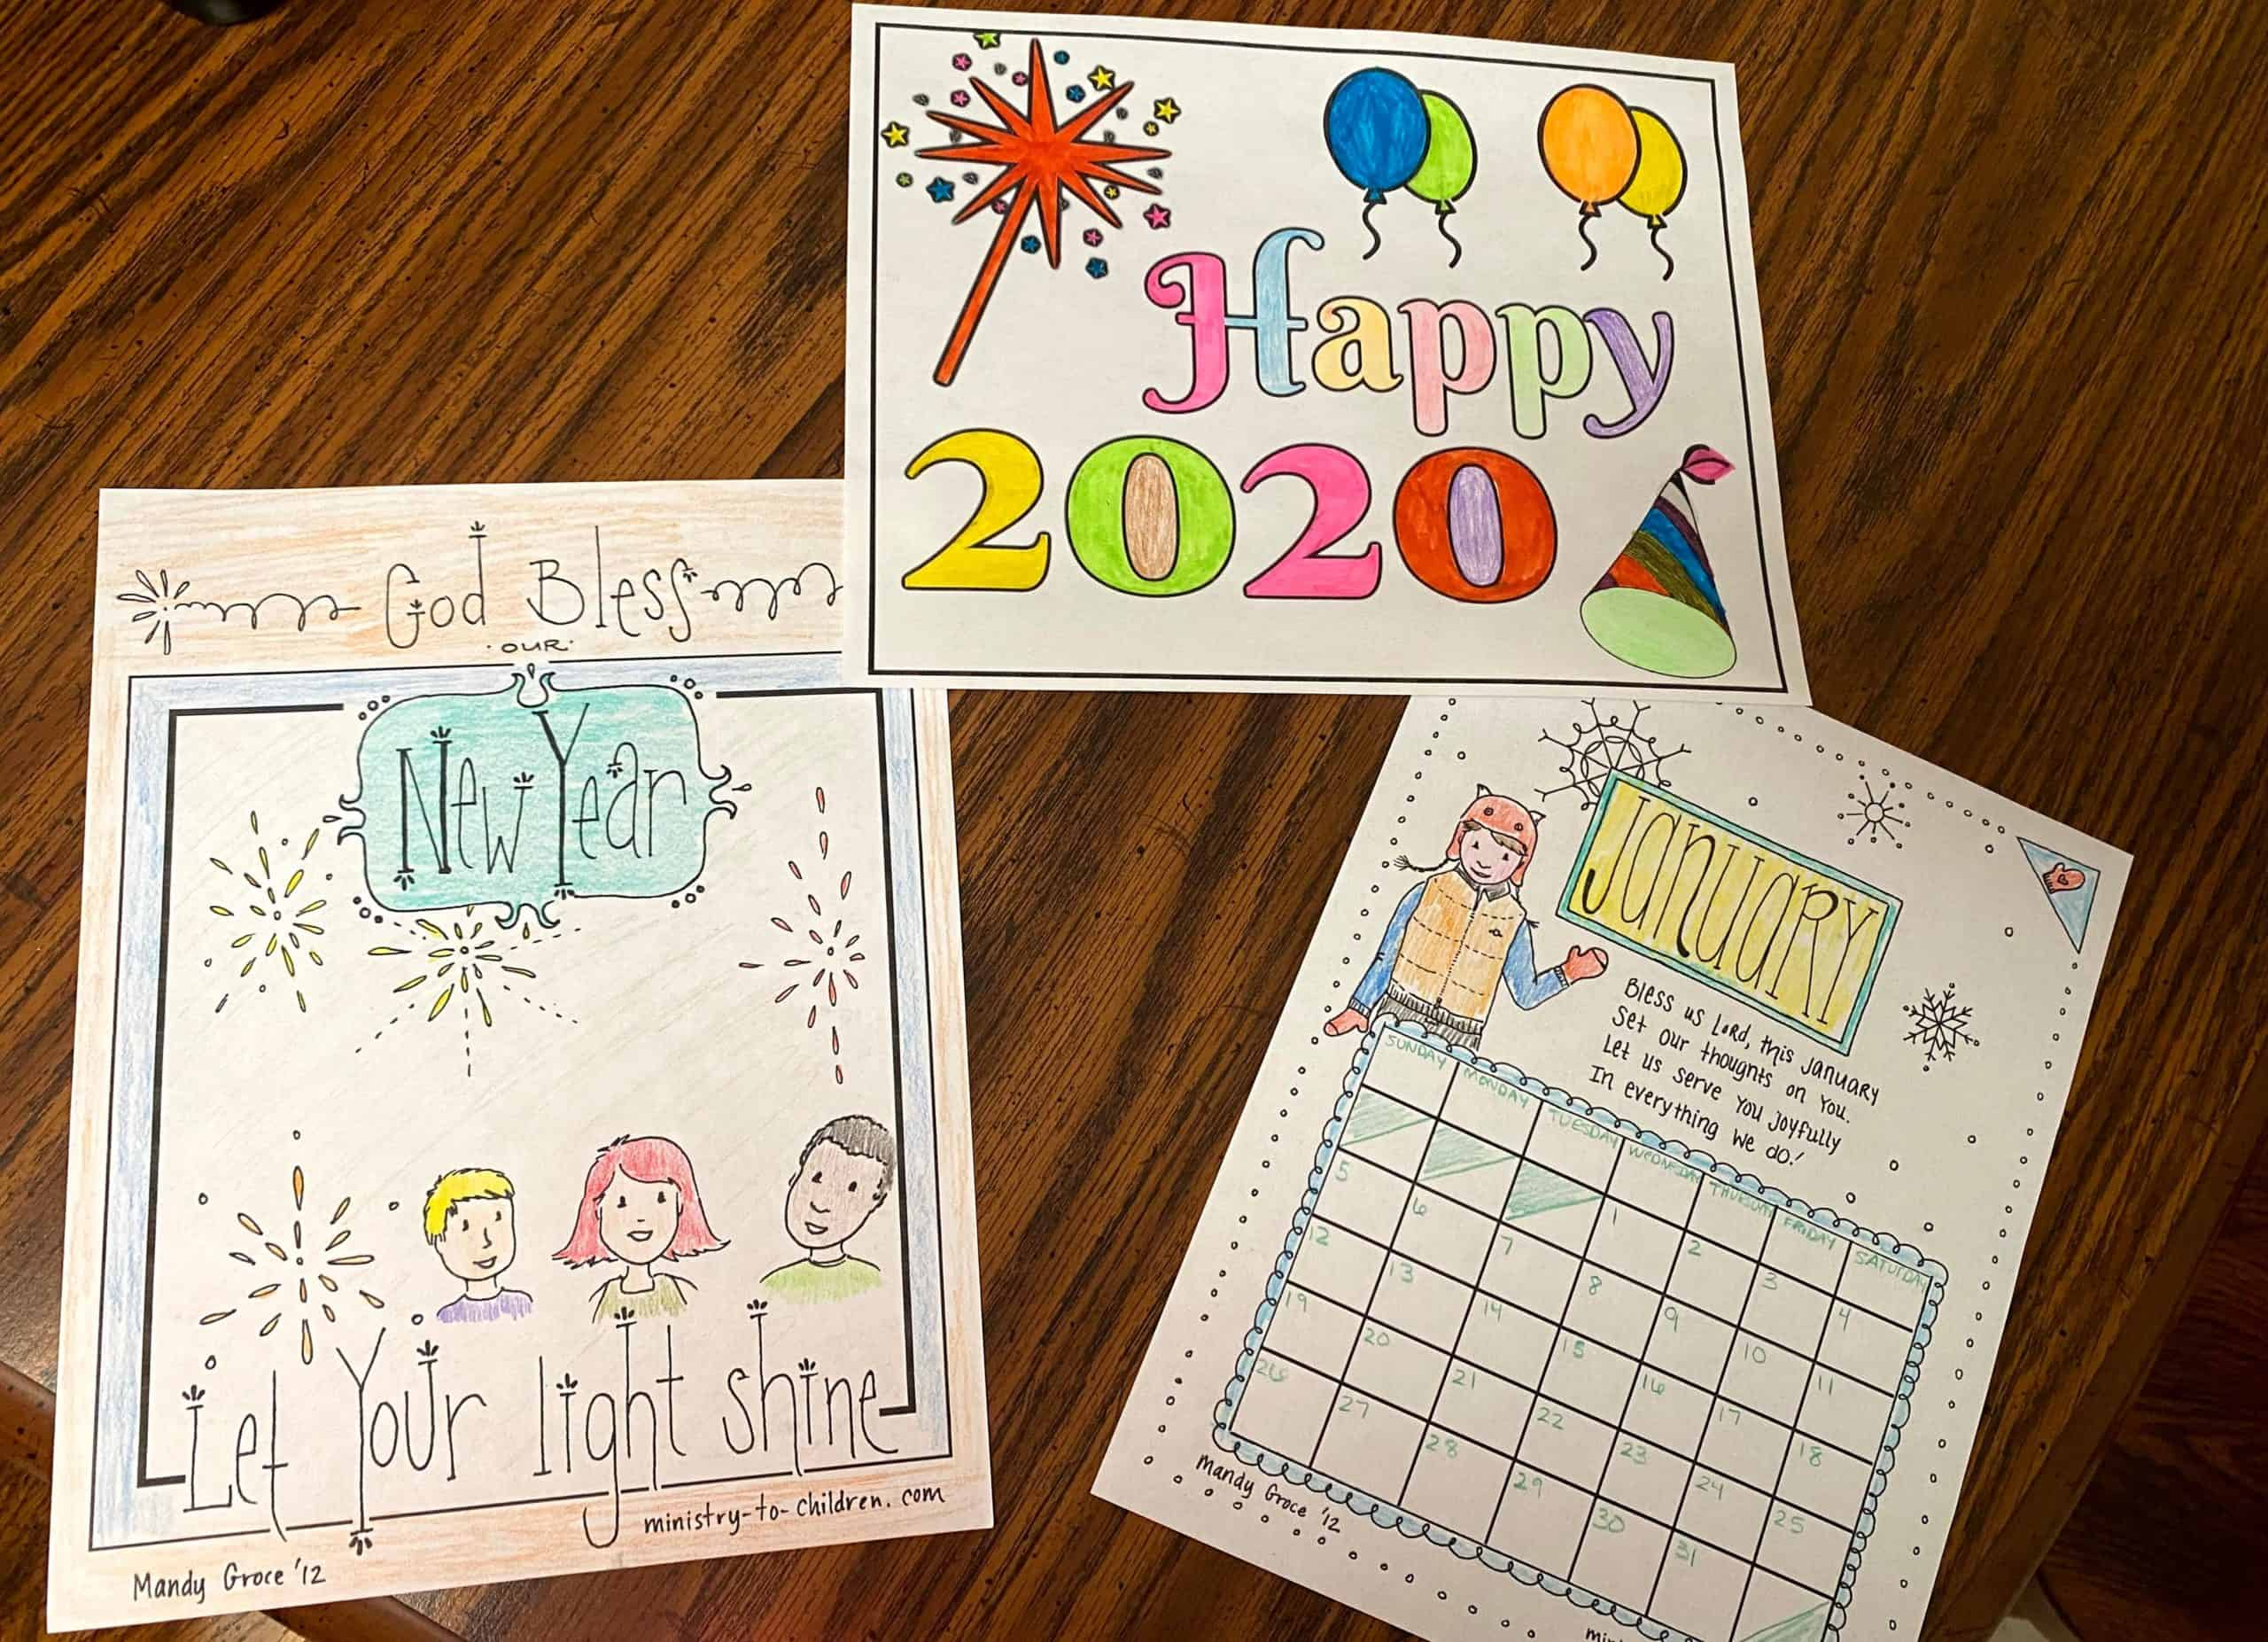 New Year S Coloring Page 2020 Let Your Light Shine Free Printbale Pdf